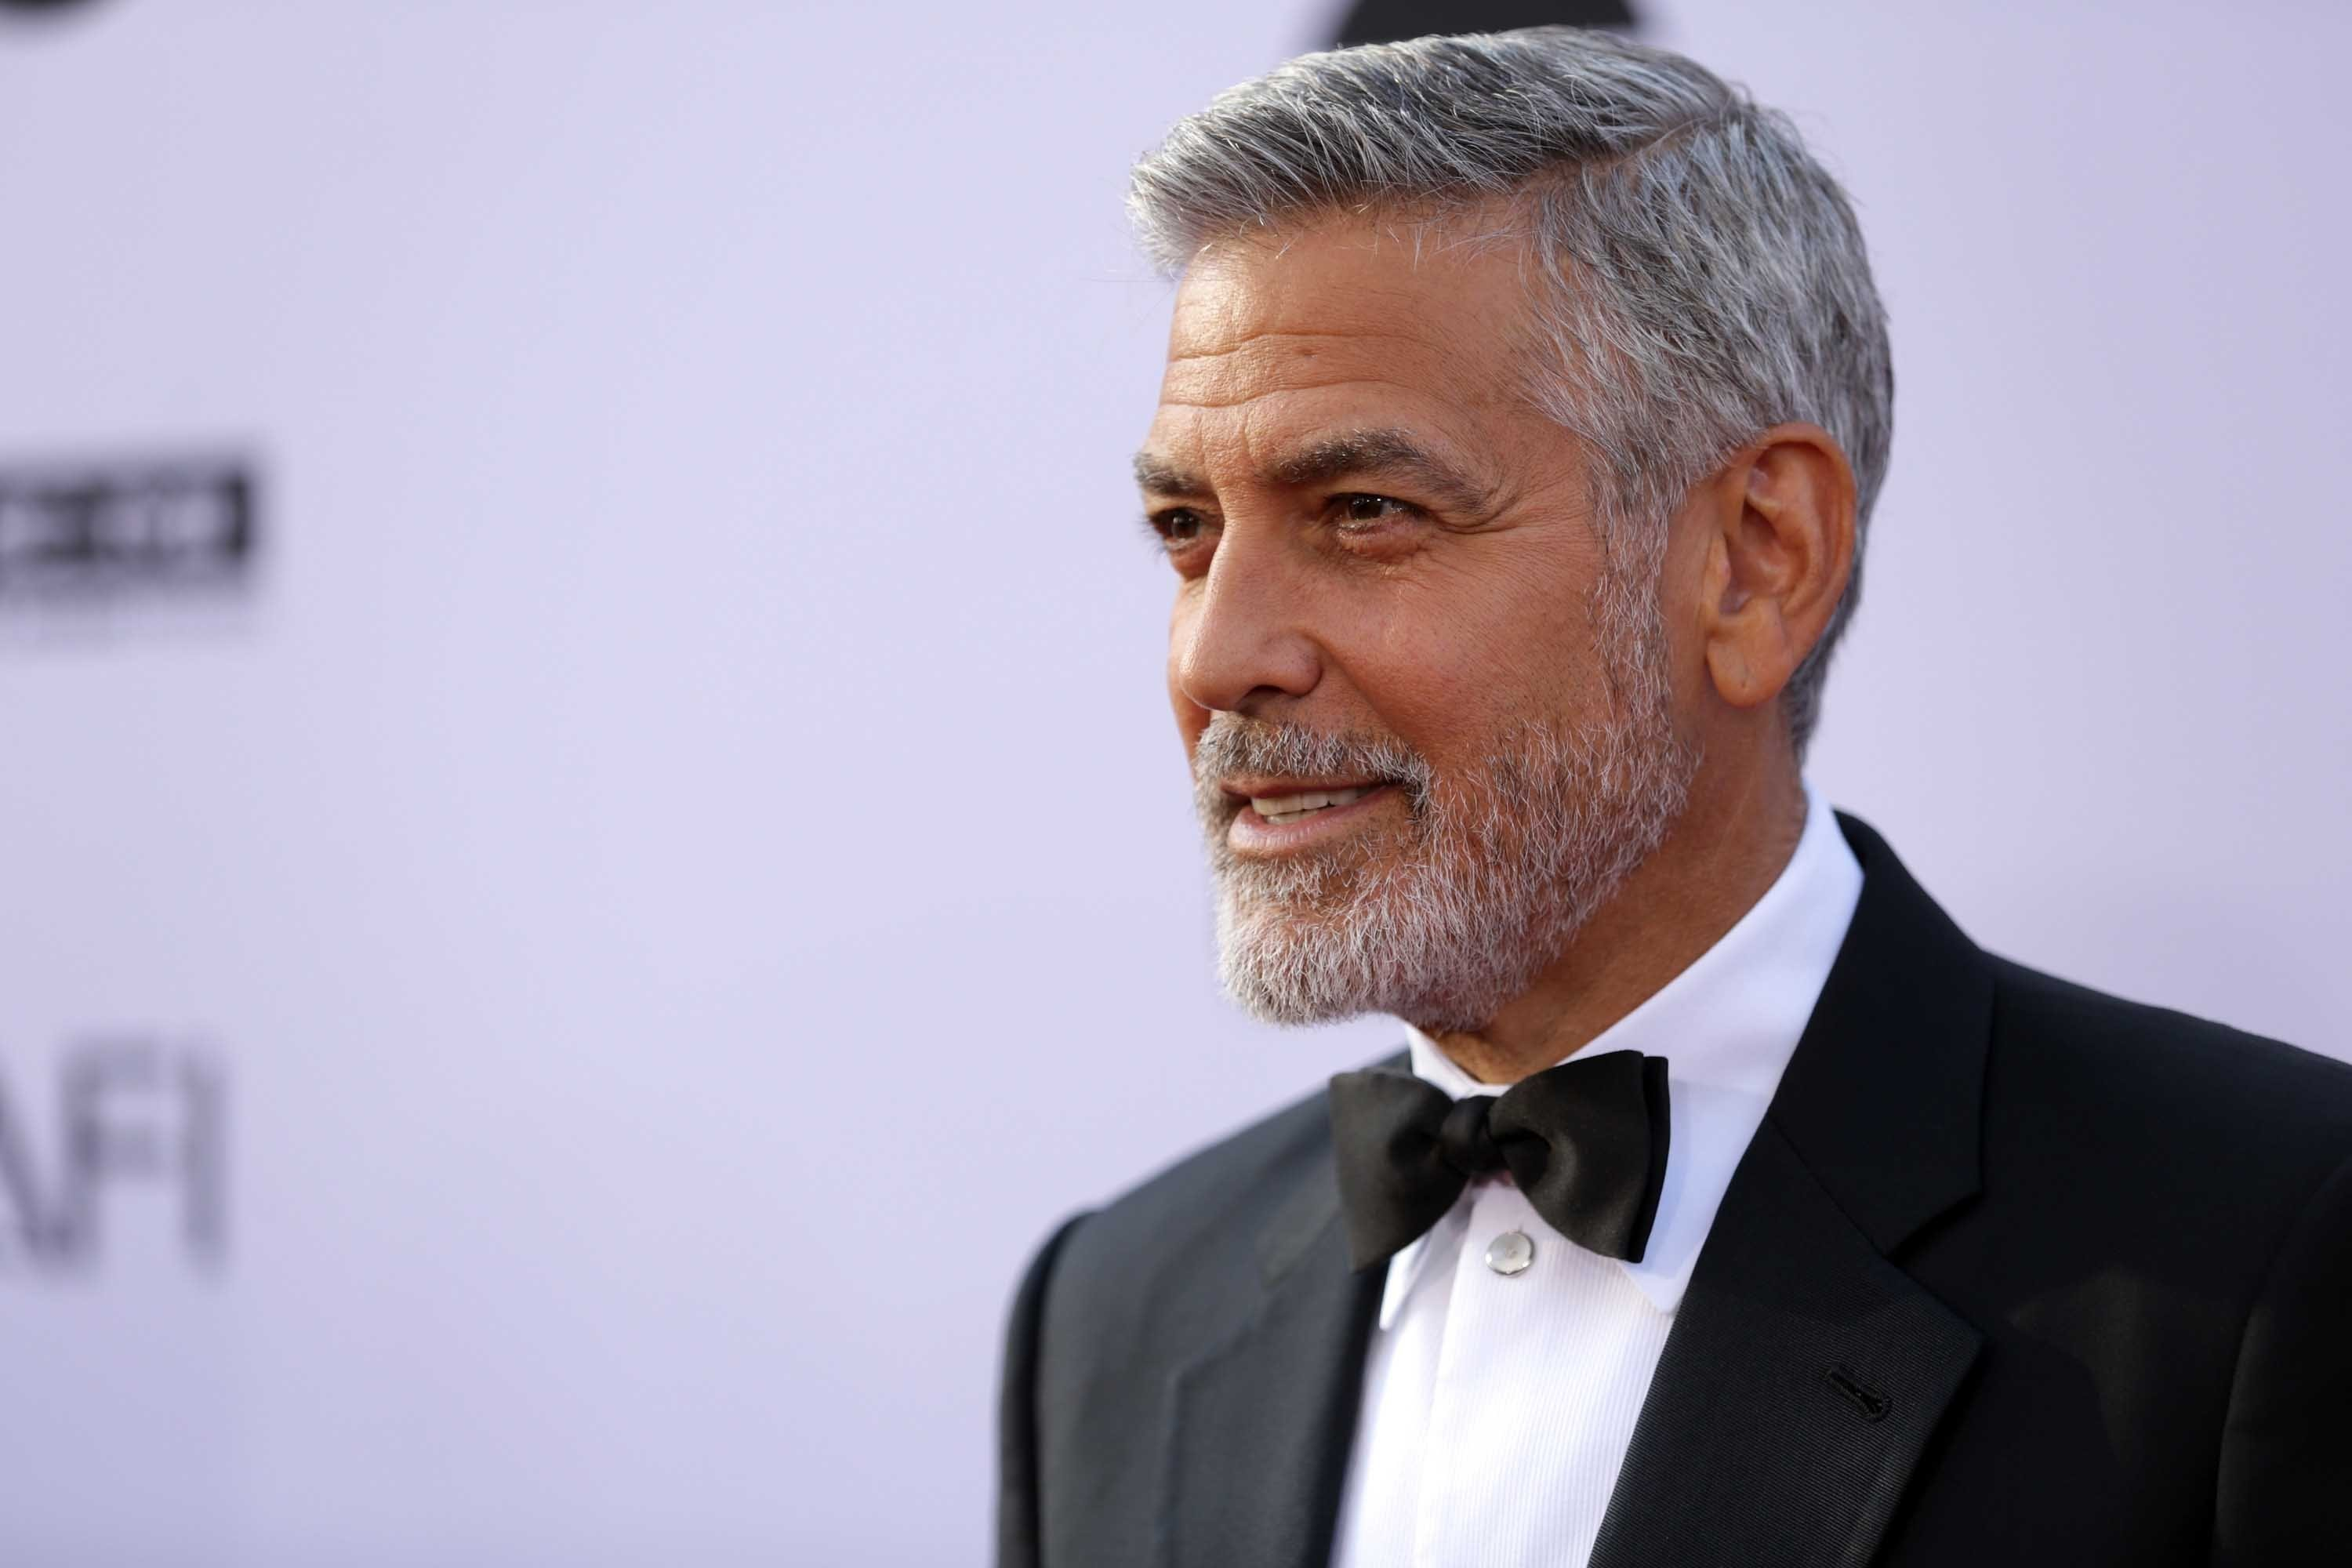 US actor George Clooney has been released from an Italian hospital after being involved in a motor accident Tuesday.